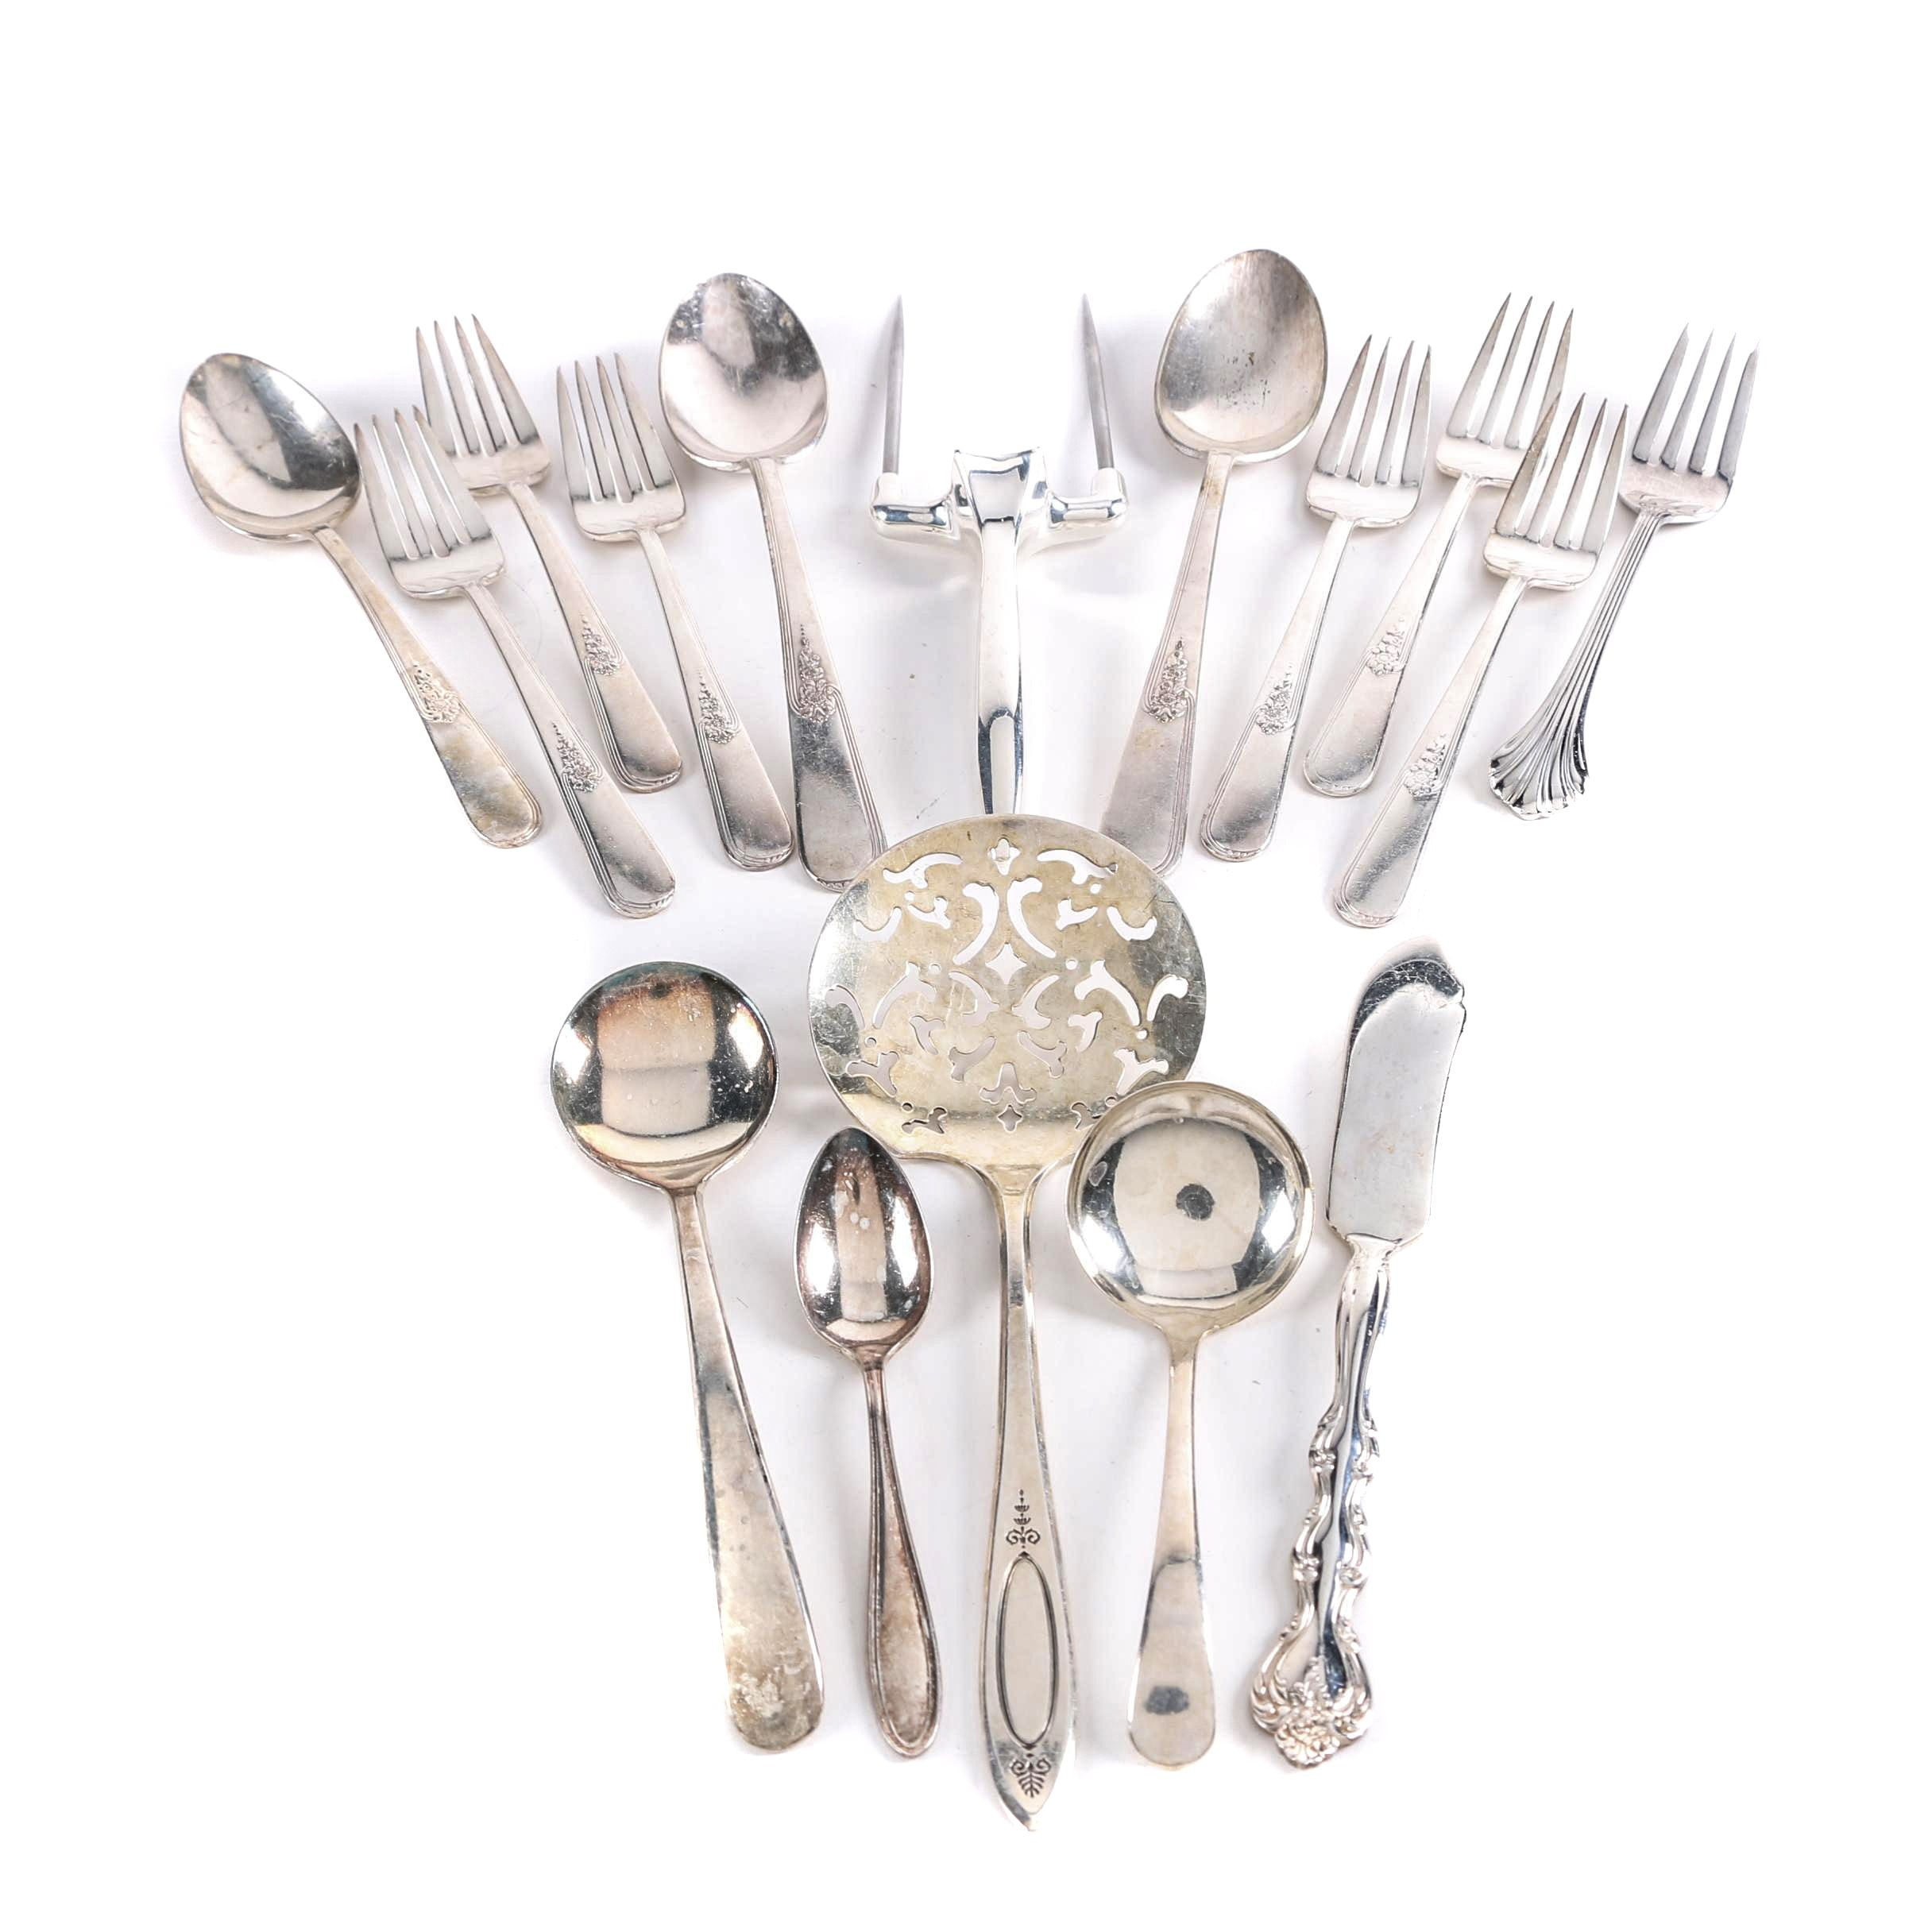 Silver Plate Utensils Featuring Community and International Silver Co.